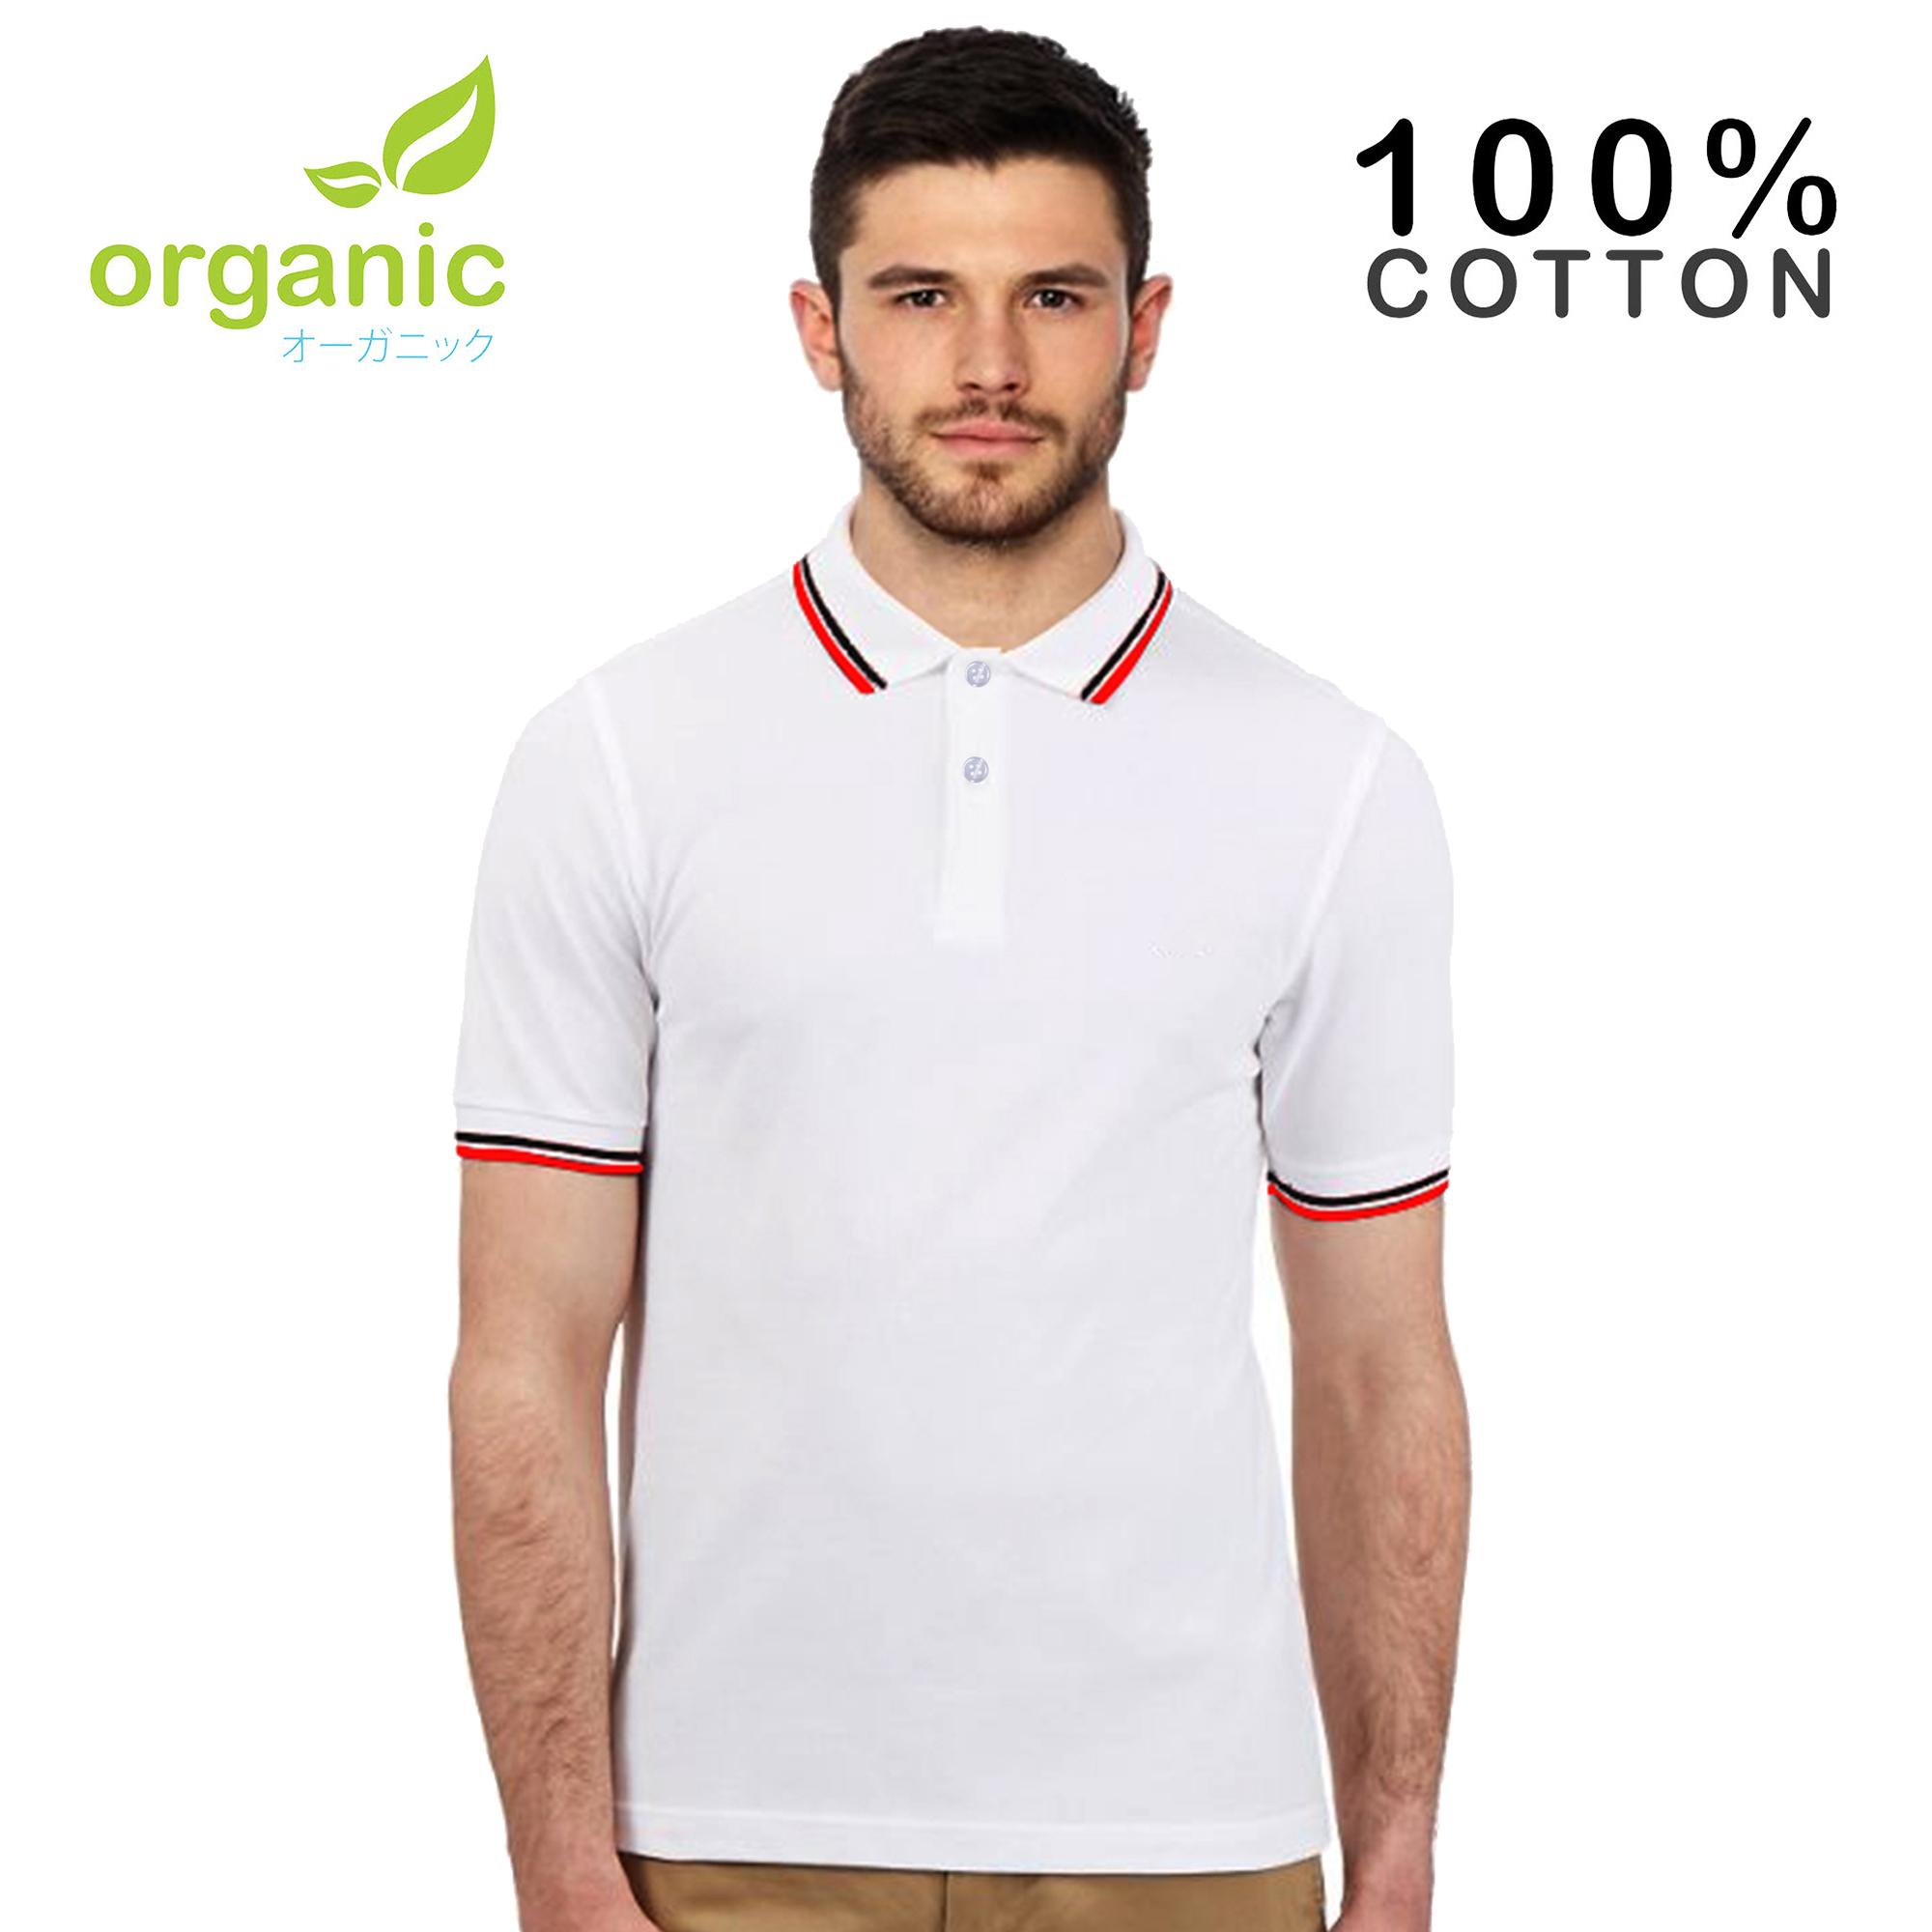 e310a785fb49 Organic Mens Tipped Pique Polo Shirt Tees t shirt tshirt shirts tshirts tee  tops top for